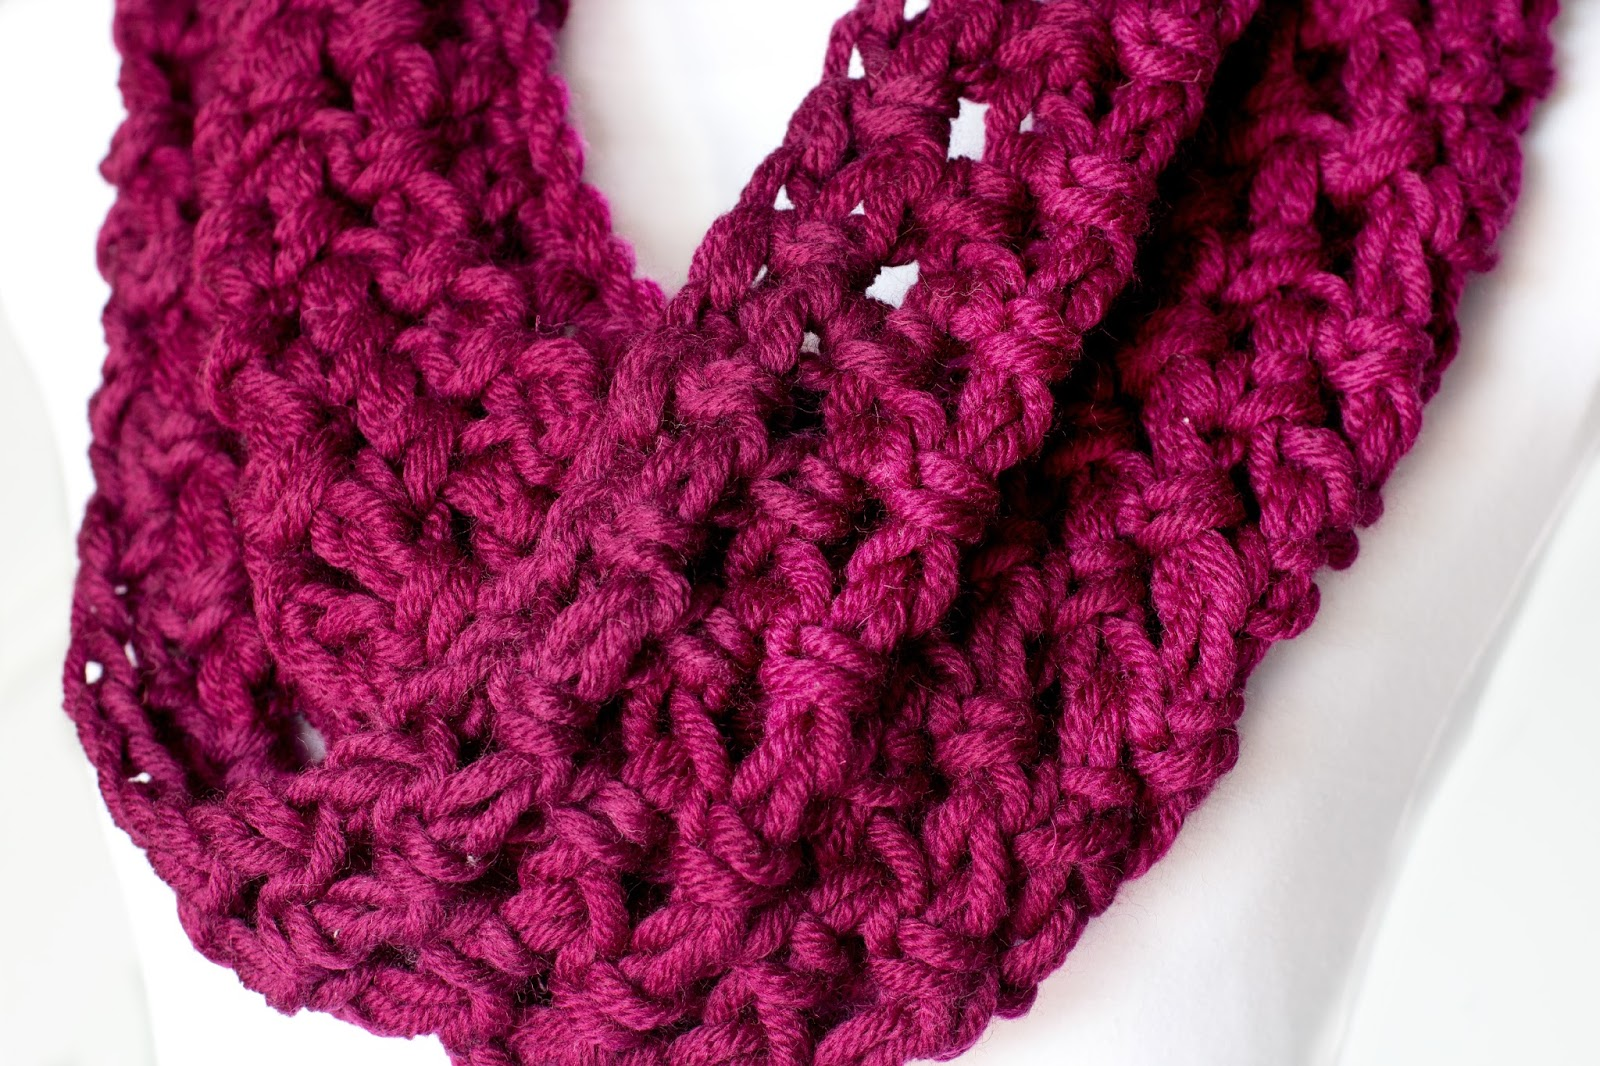 Crochet Patterns Chunky Yarn : ... Honey Craft, Crochet, Create: Basic Chunky Cowl Crochet Pattern